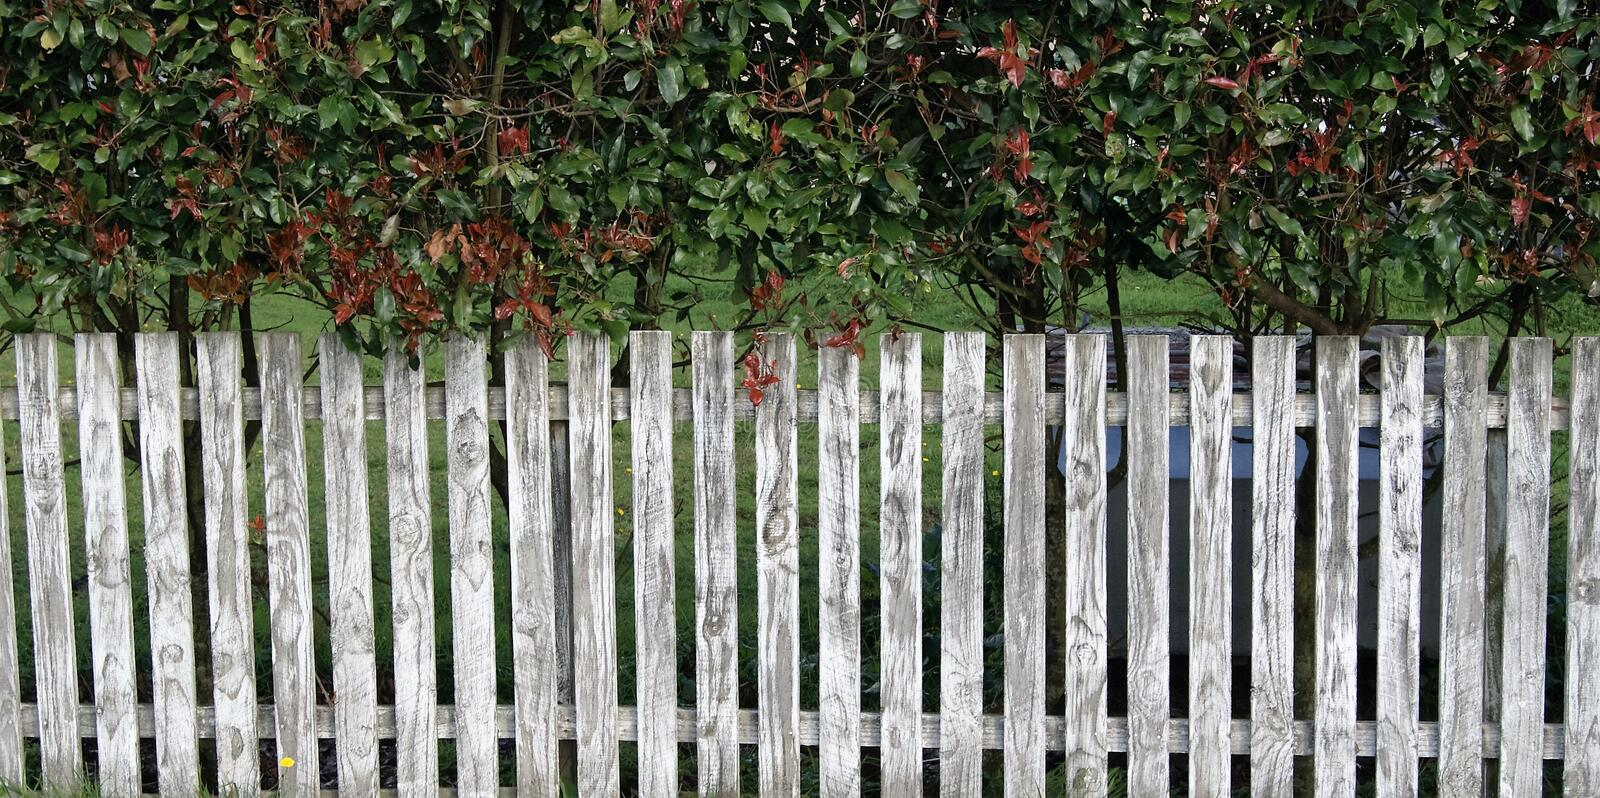 White picket fence. Photo showing close up of a white picket fence with a hedge behind it stock illustration